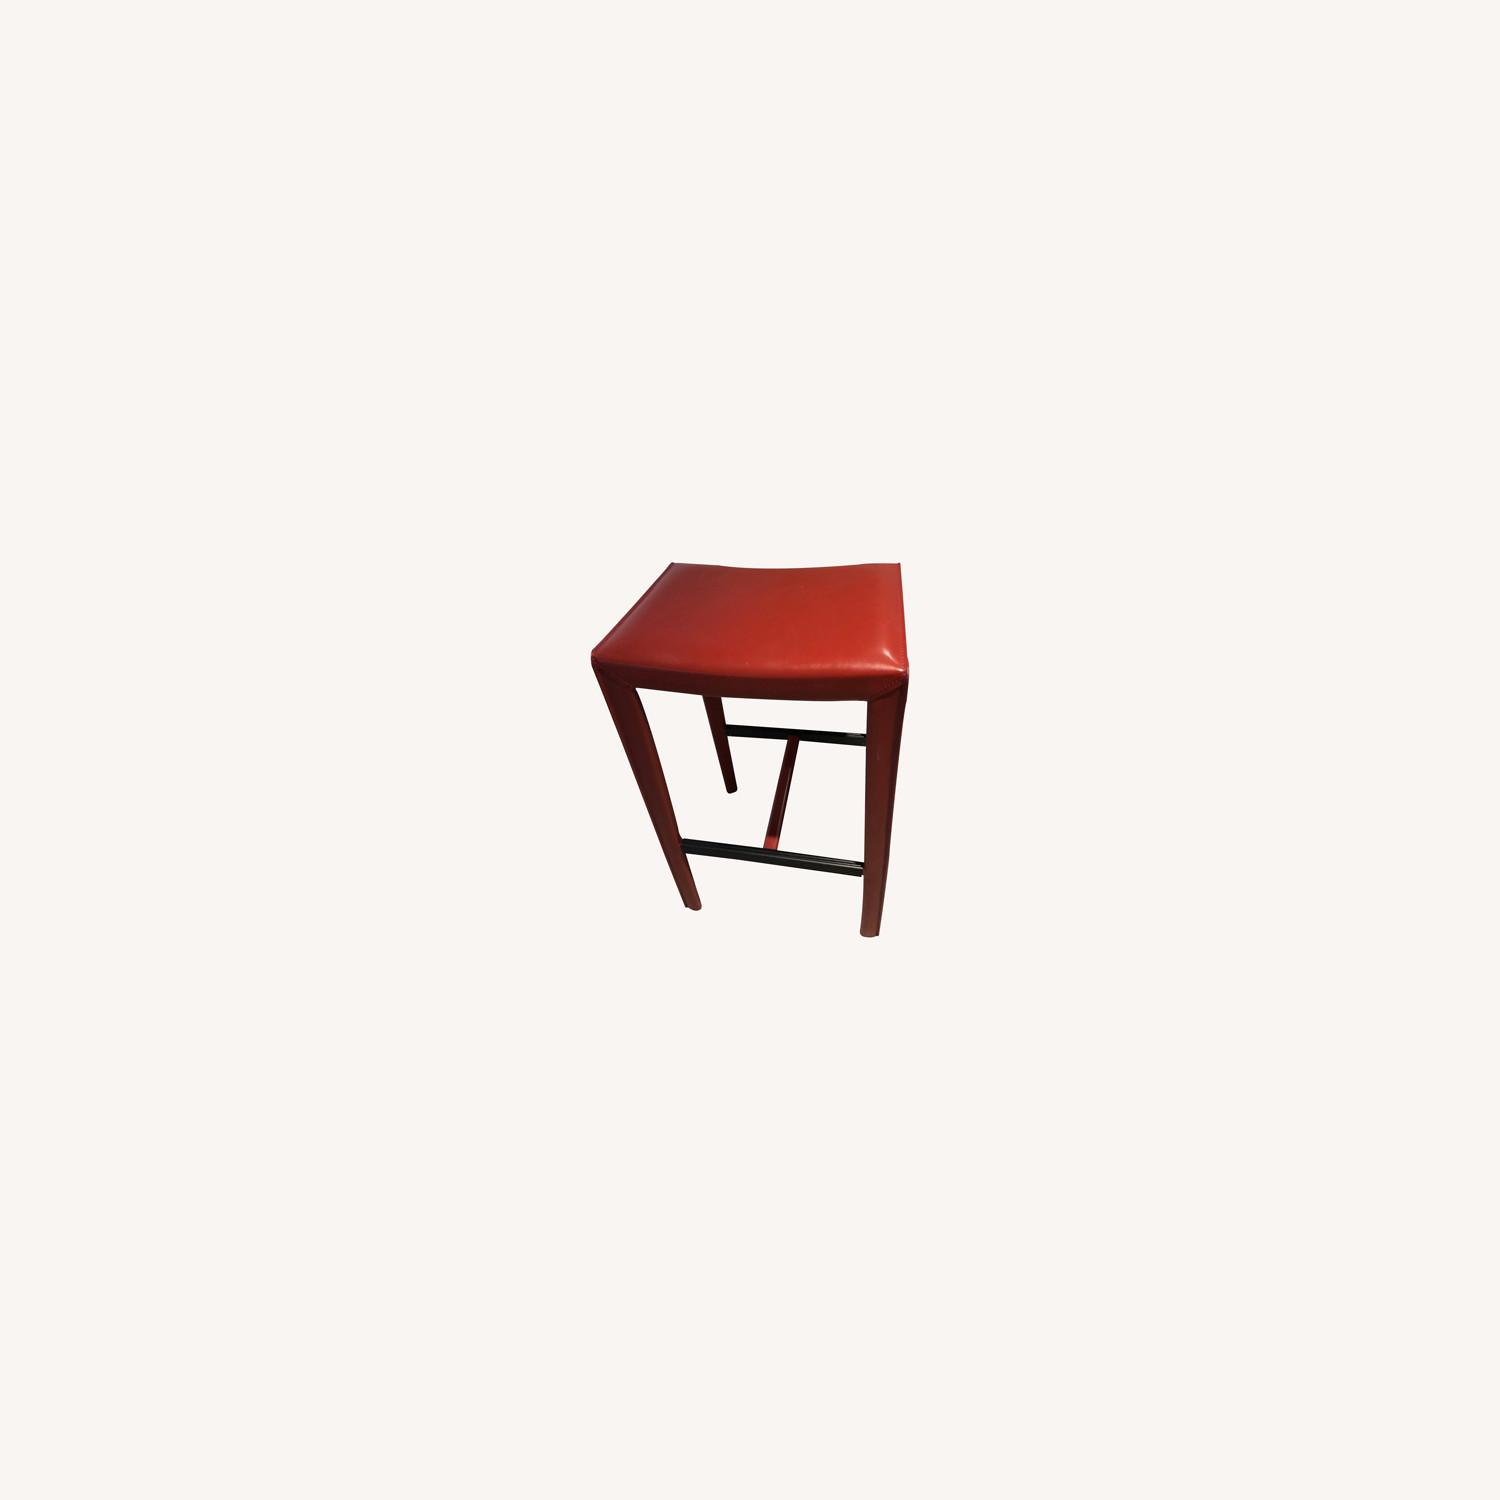 Crate & Barrel Backless Red Leather Stools - image-0